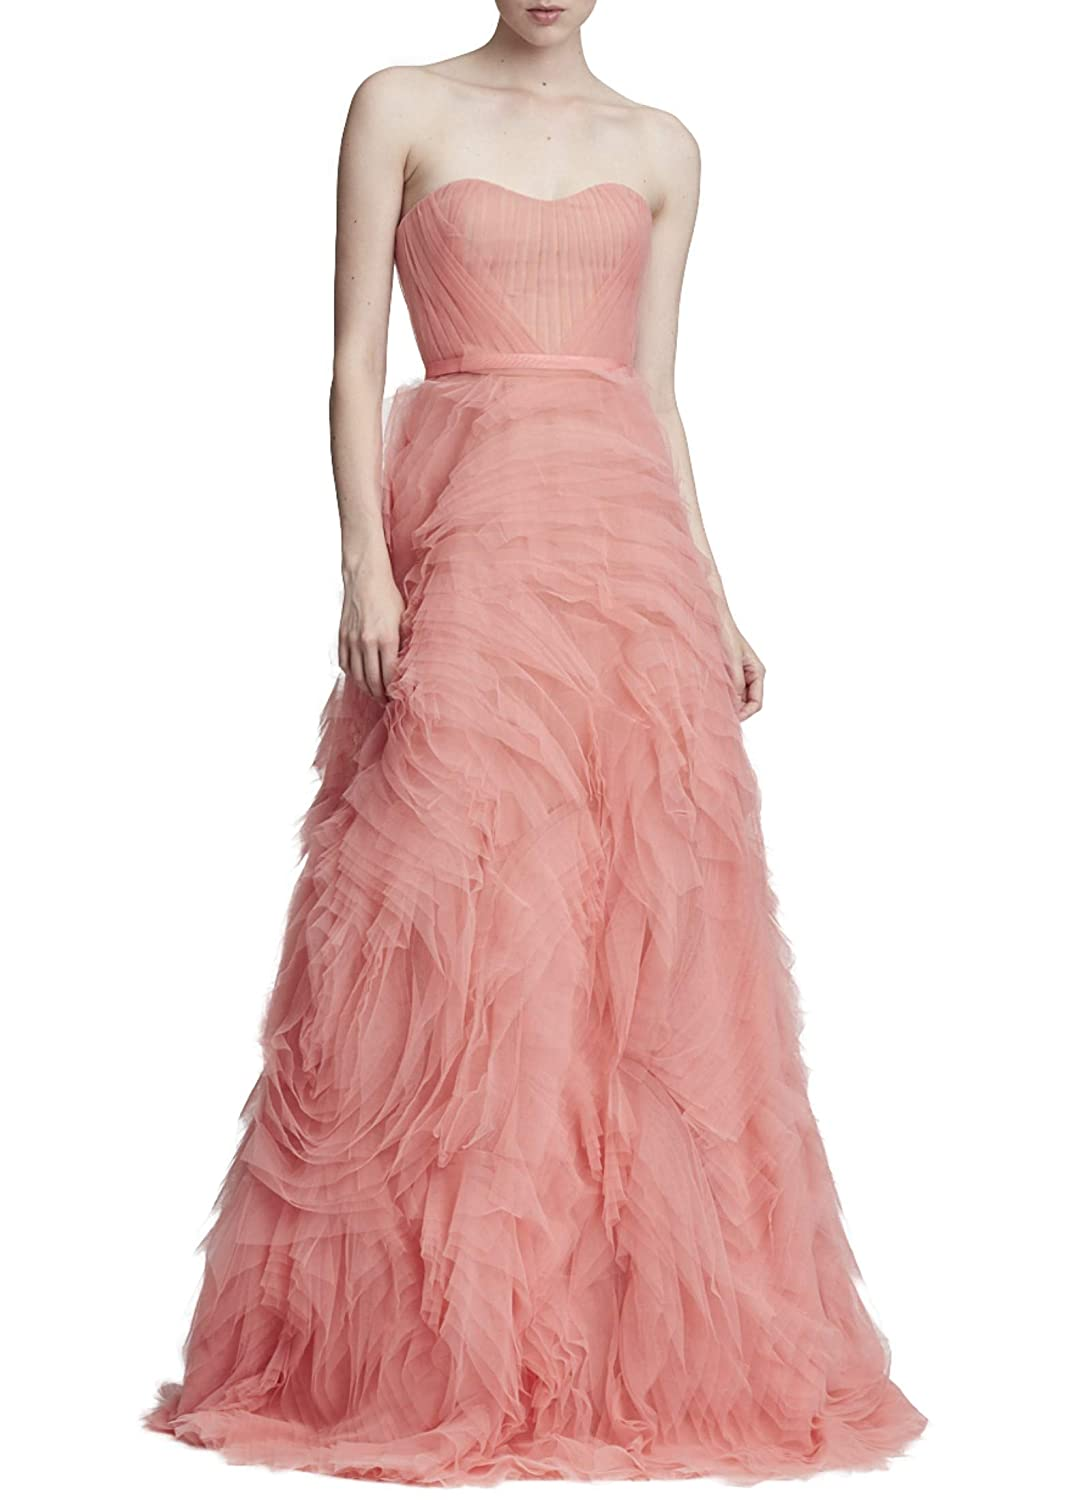 bcd939e555e46 Marchesa Notte Women s Strapless Textured Tulle Gown 14 Coral  Amazon.ca   Clothing   Accessories